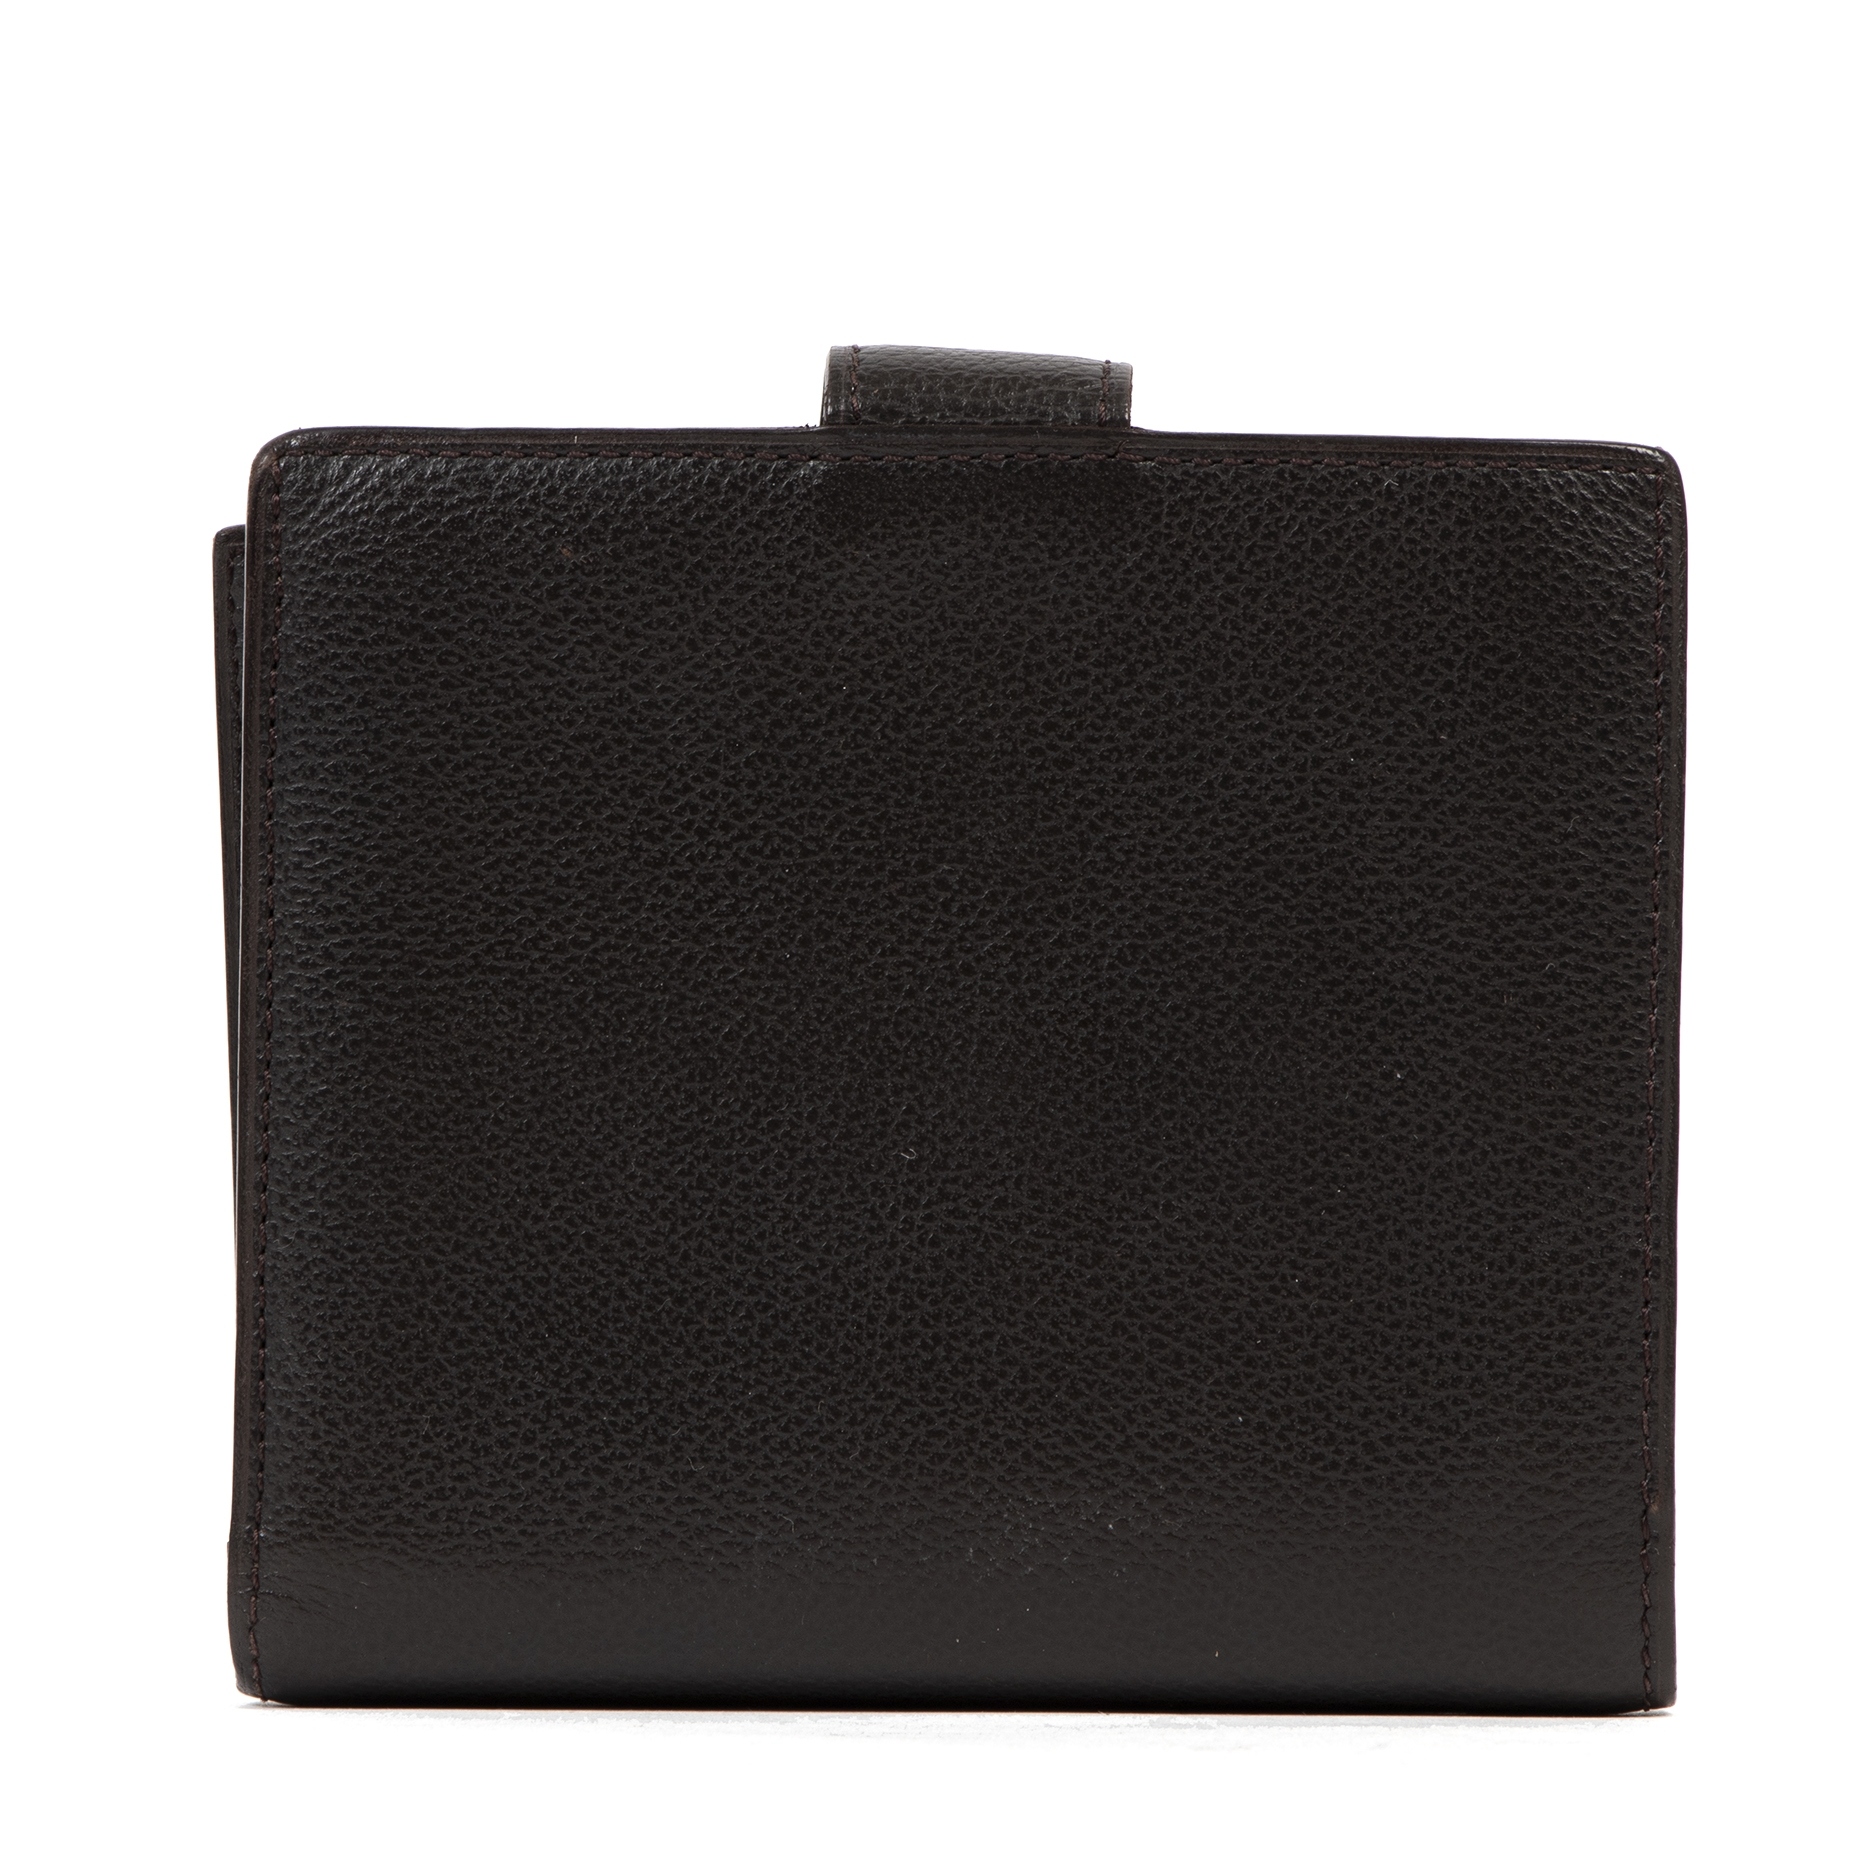 Authentic second-hand vintage Delvaux Chocolate Compact Wallet buy online webshop LabelLOV